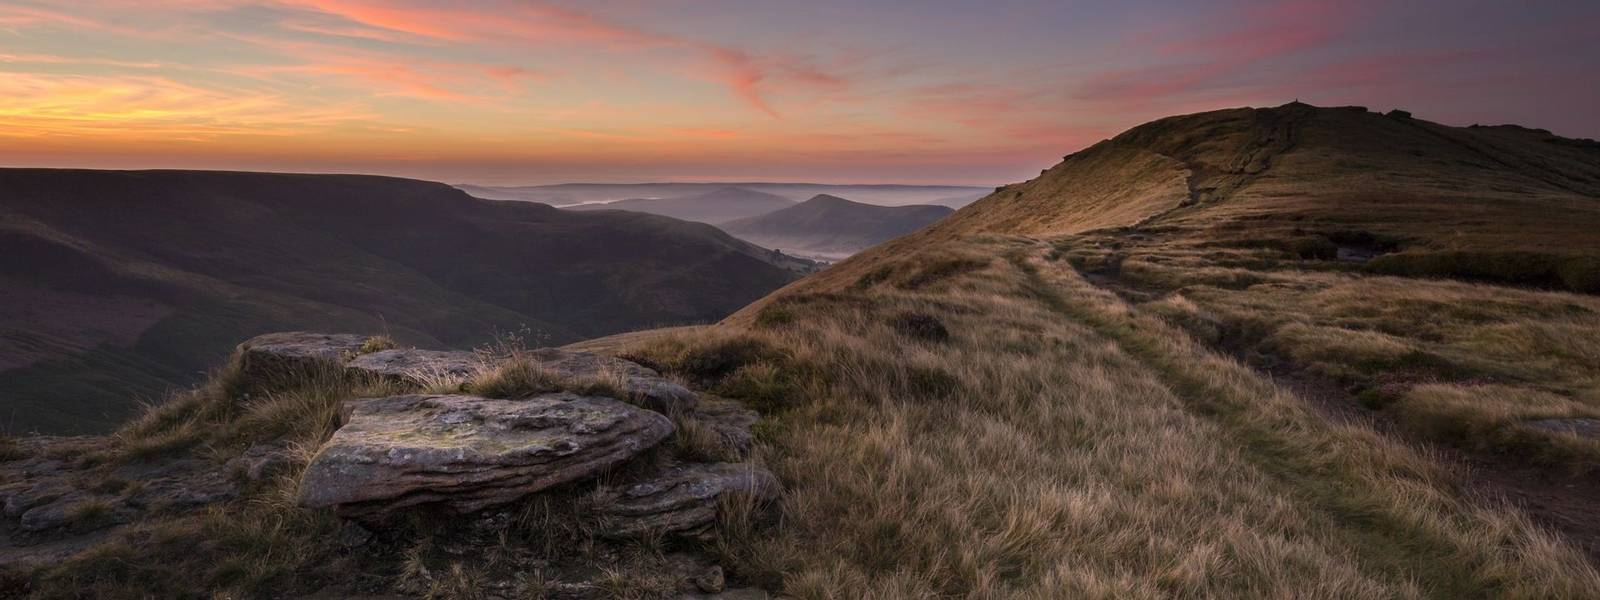 Dovedale - Peak District - Spring and Winter - AdobeStock_125092378.jpeg